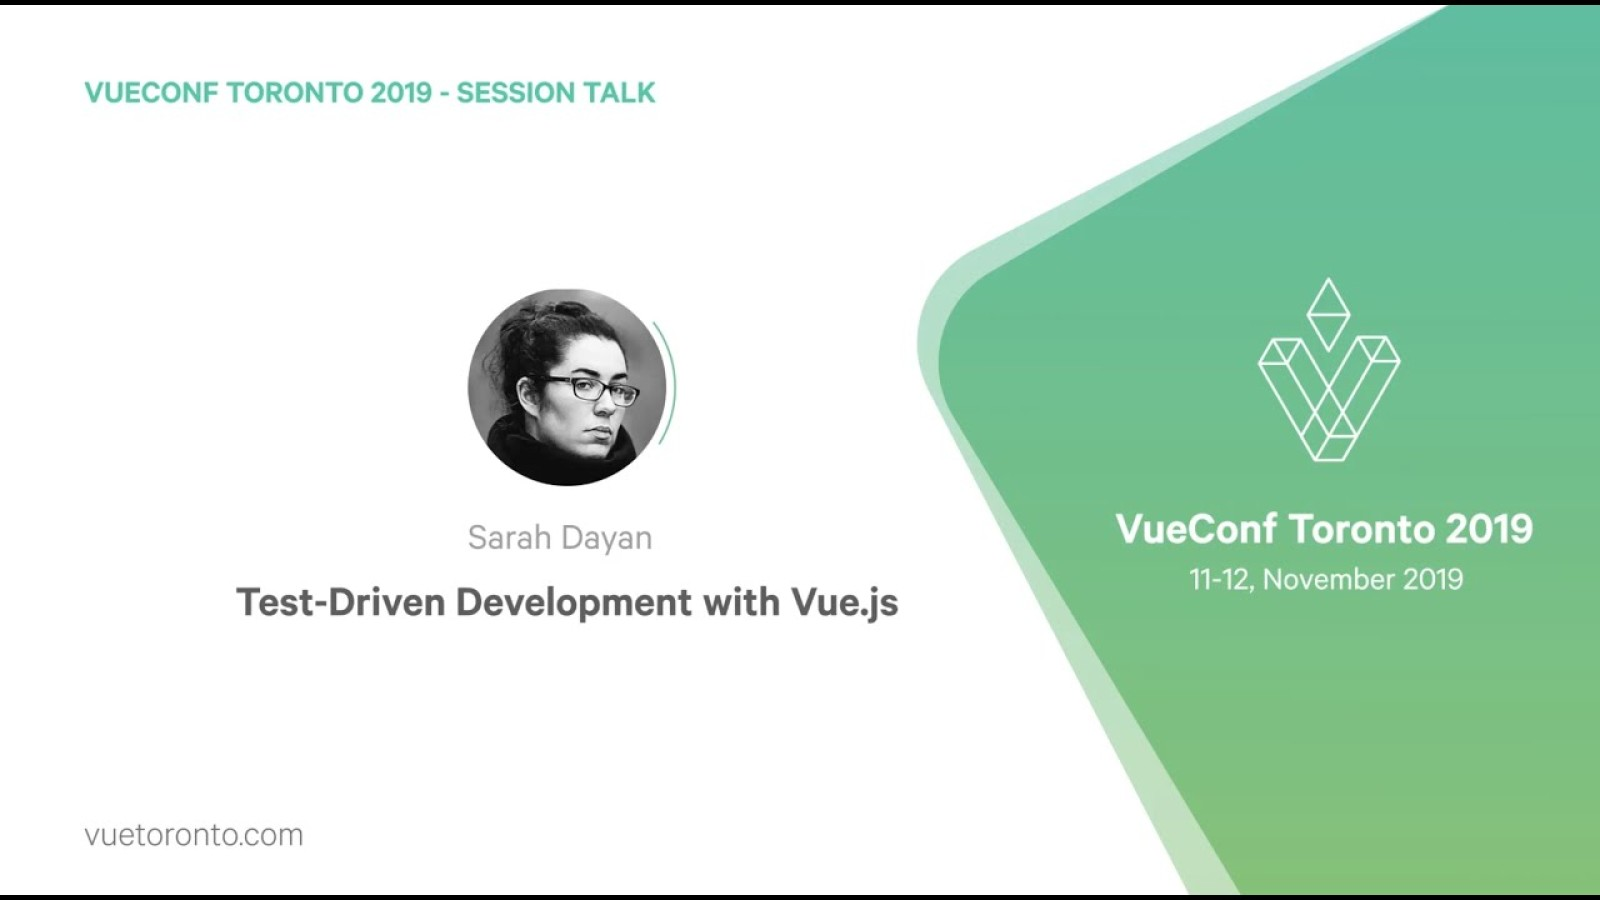 Test-Driven Development with Vue.js